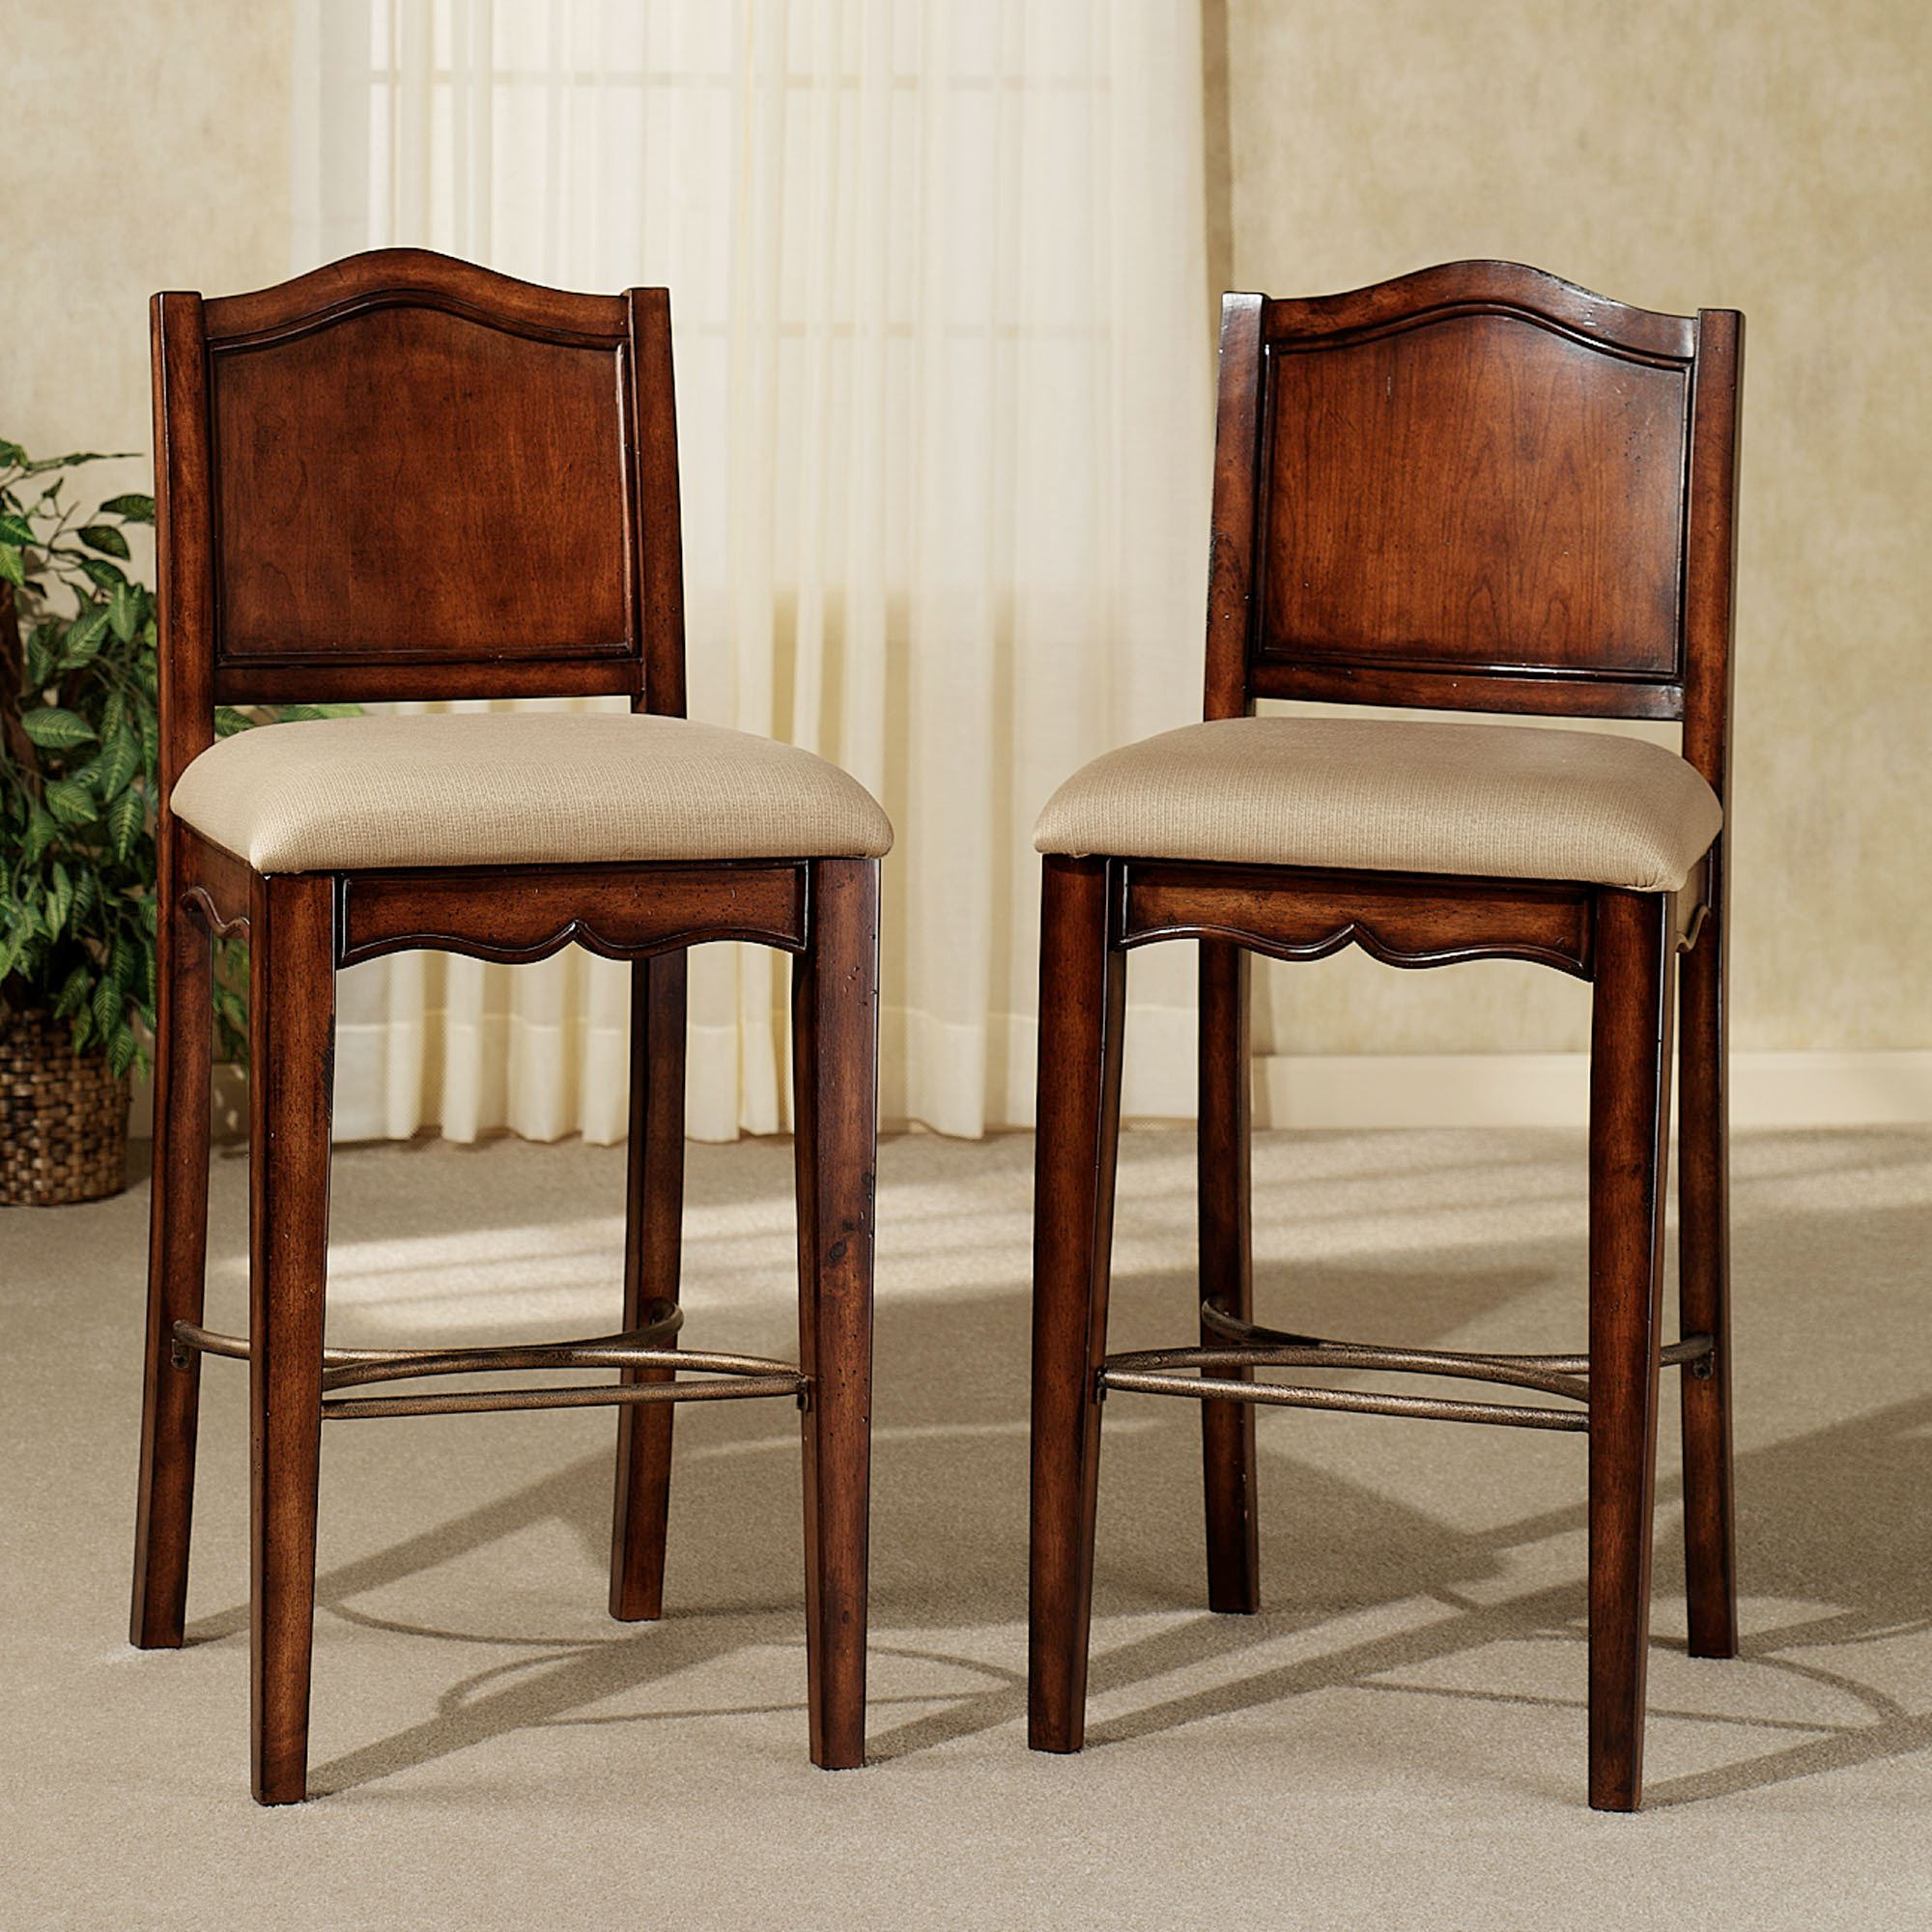 Surprising Yorktown Upholstered Traditional Bar Stool Set Machost Co Dining Chair Design Ideas Machostcouk